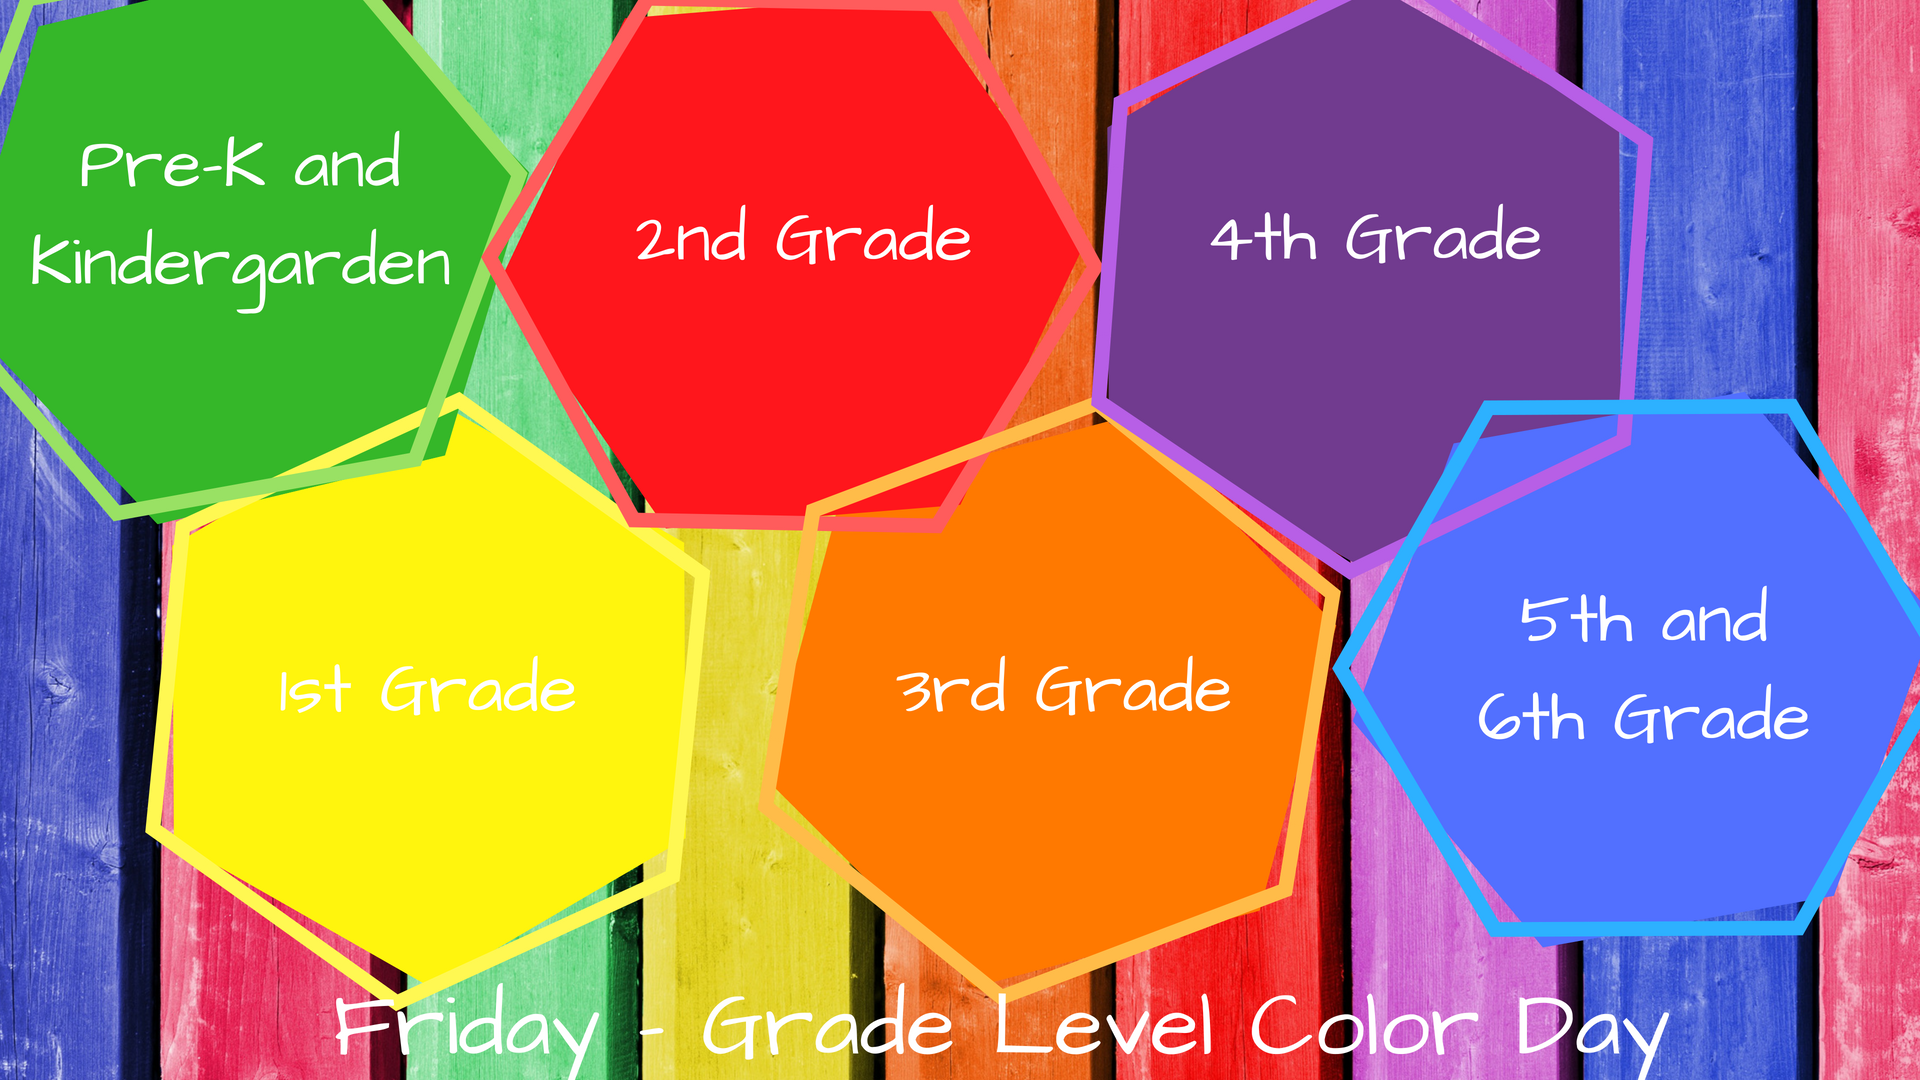 FB Friday - grade level color day